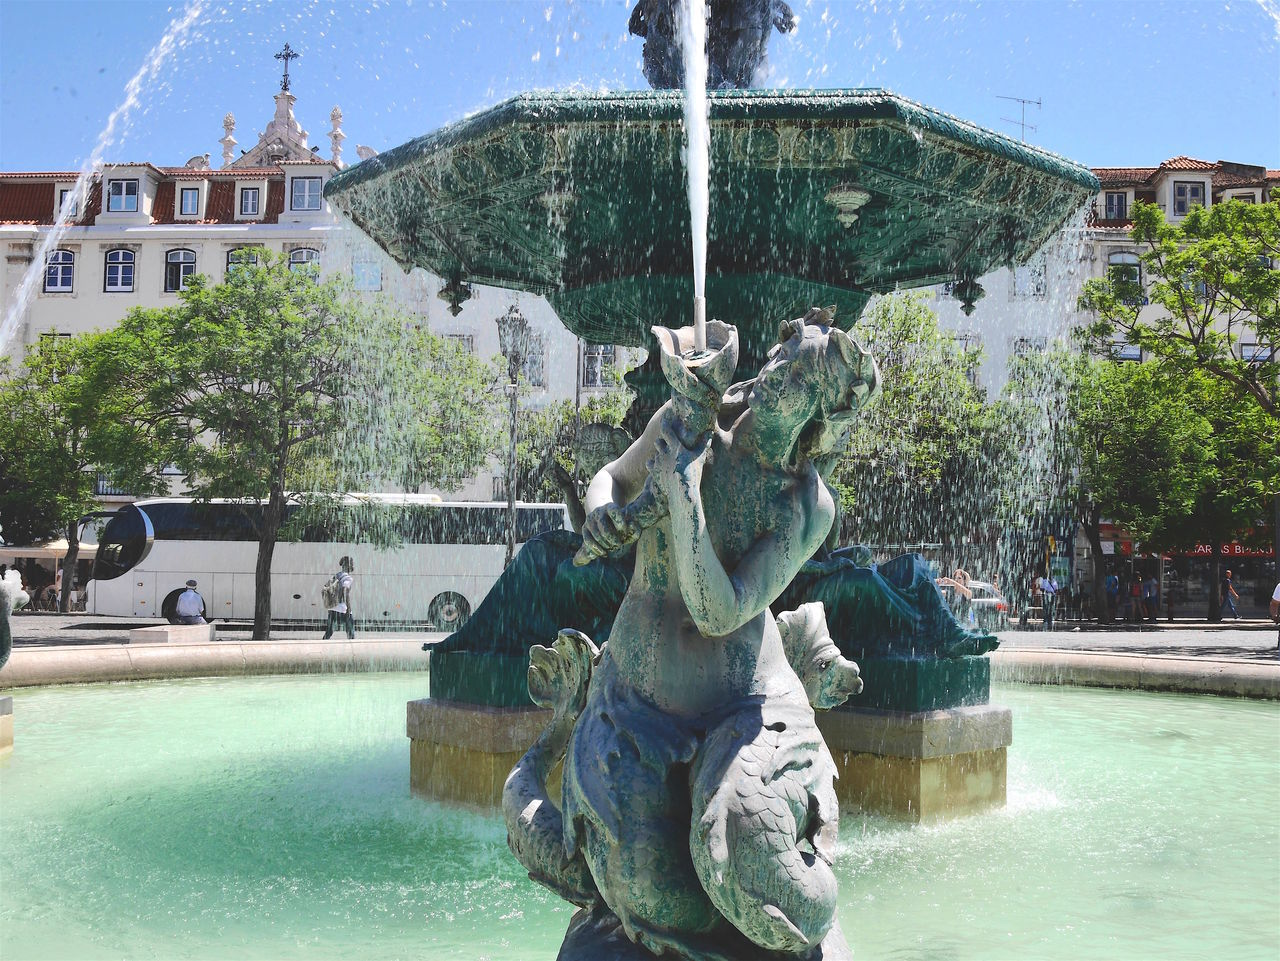 Architecture Art And Craft Building Exterior Built Structure City City Break Fountain Human Representation Lisbon Lisbon Portugal Outdoors Sculpture Statue Water